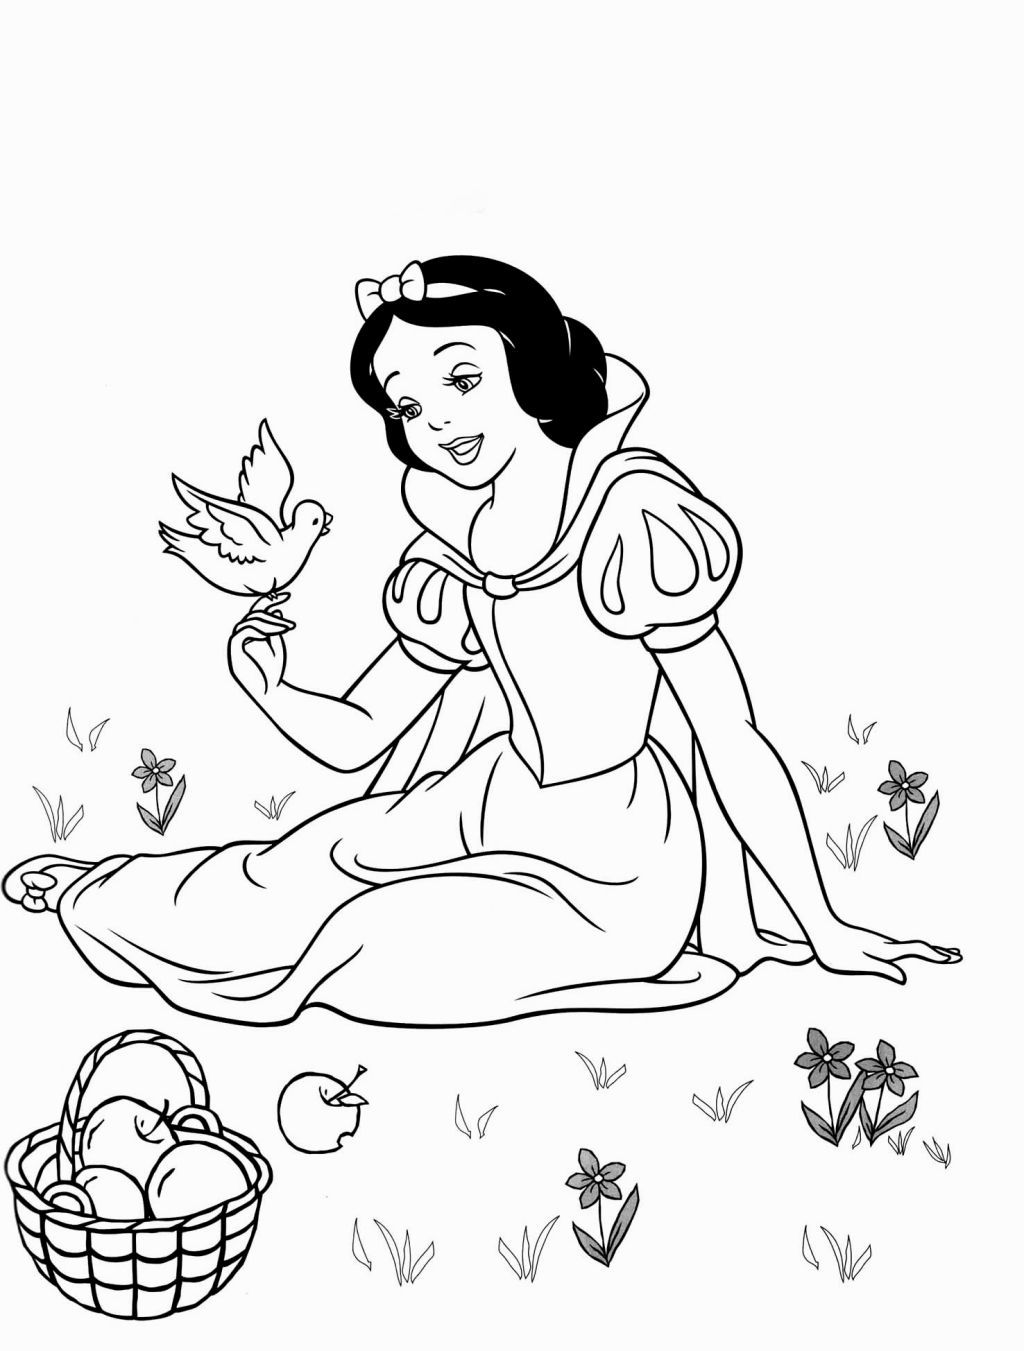 Snow White Coloring Book Disney Coloring Pages Snow White Coloring Pages Disney Princess Coloring Pages